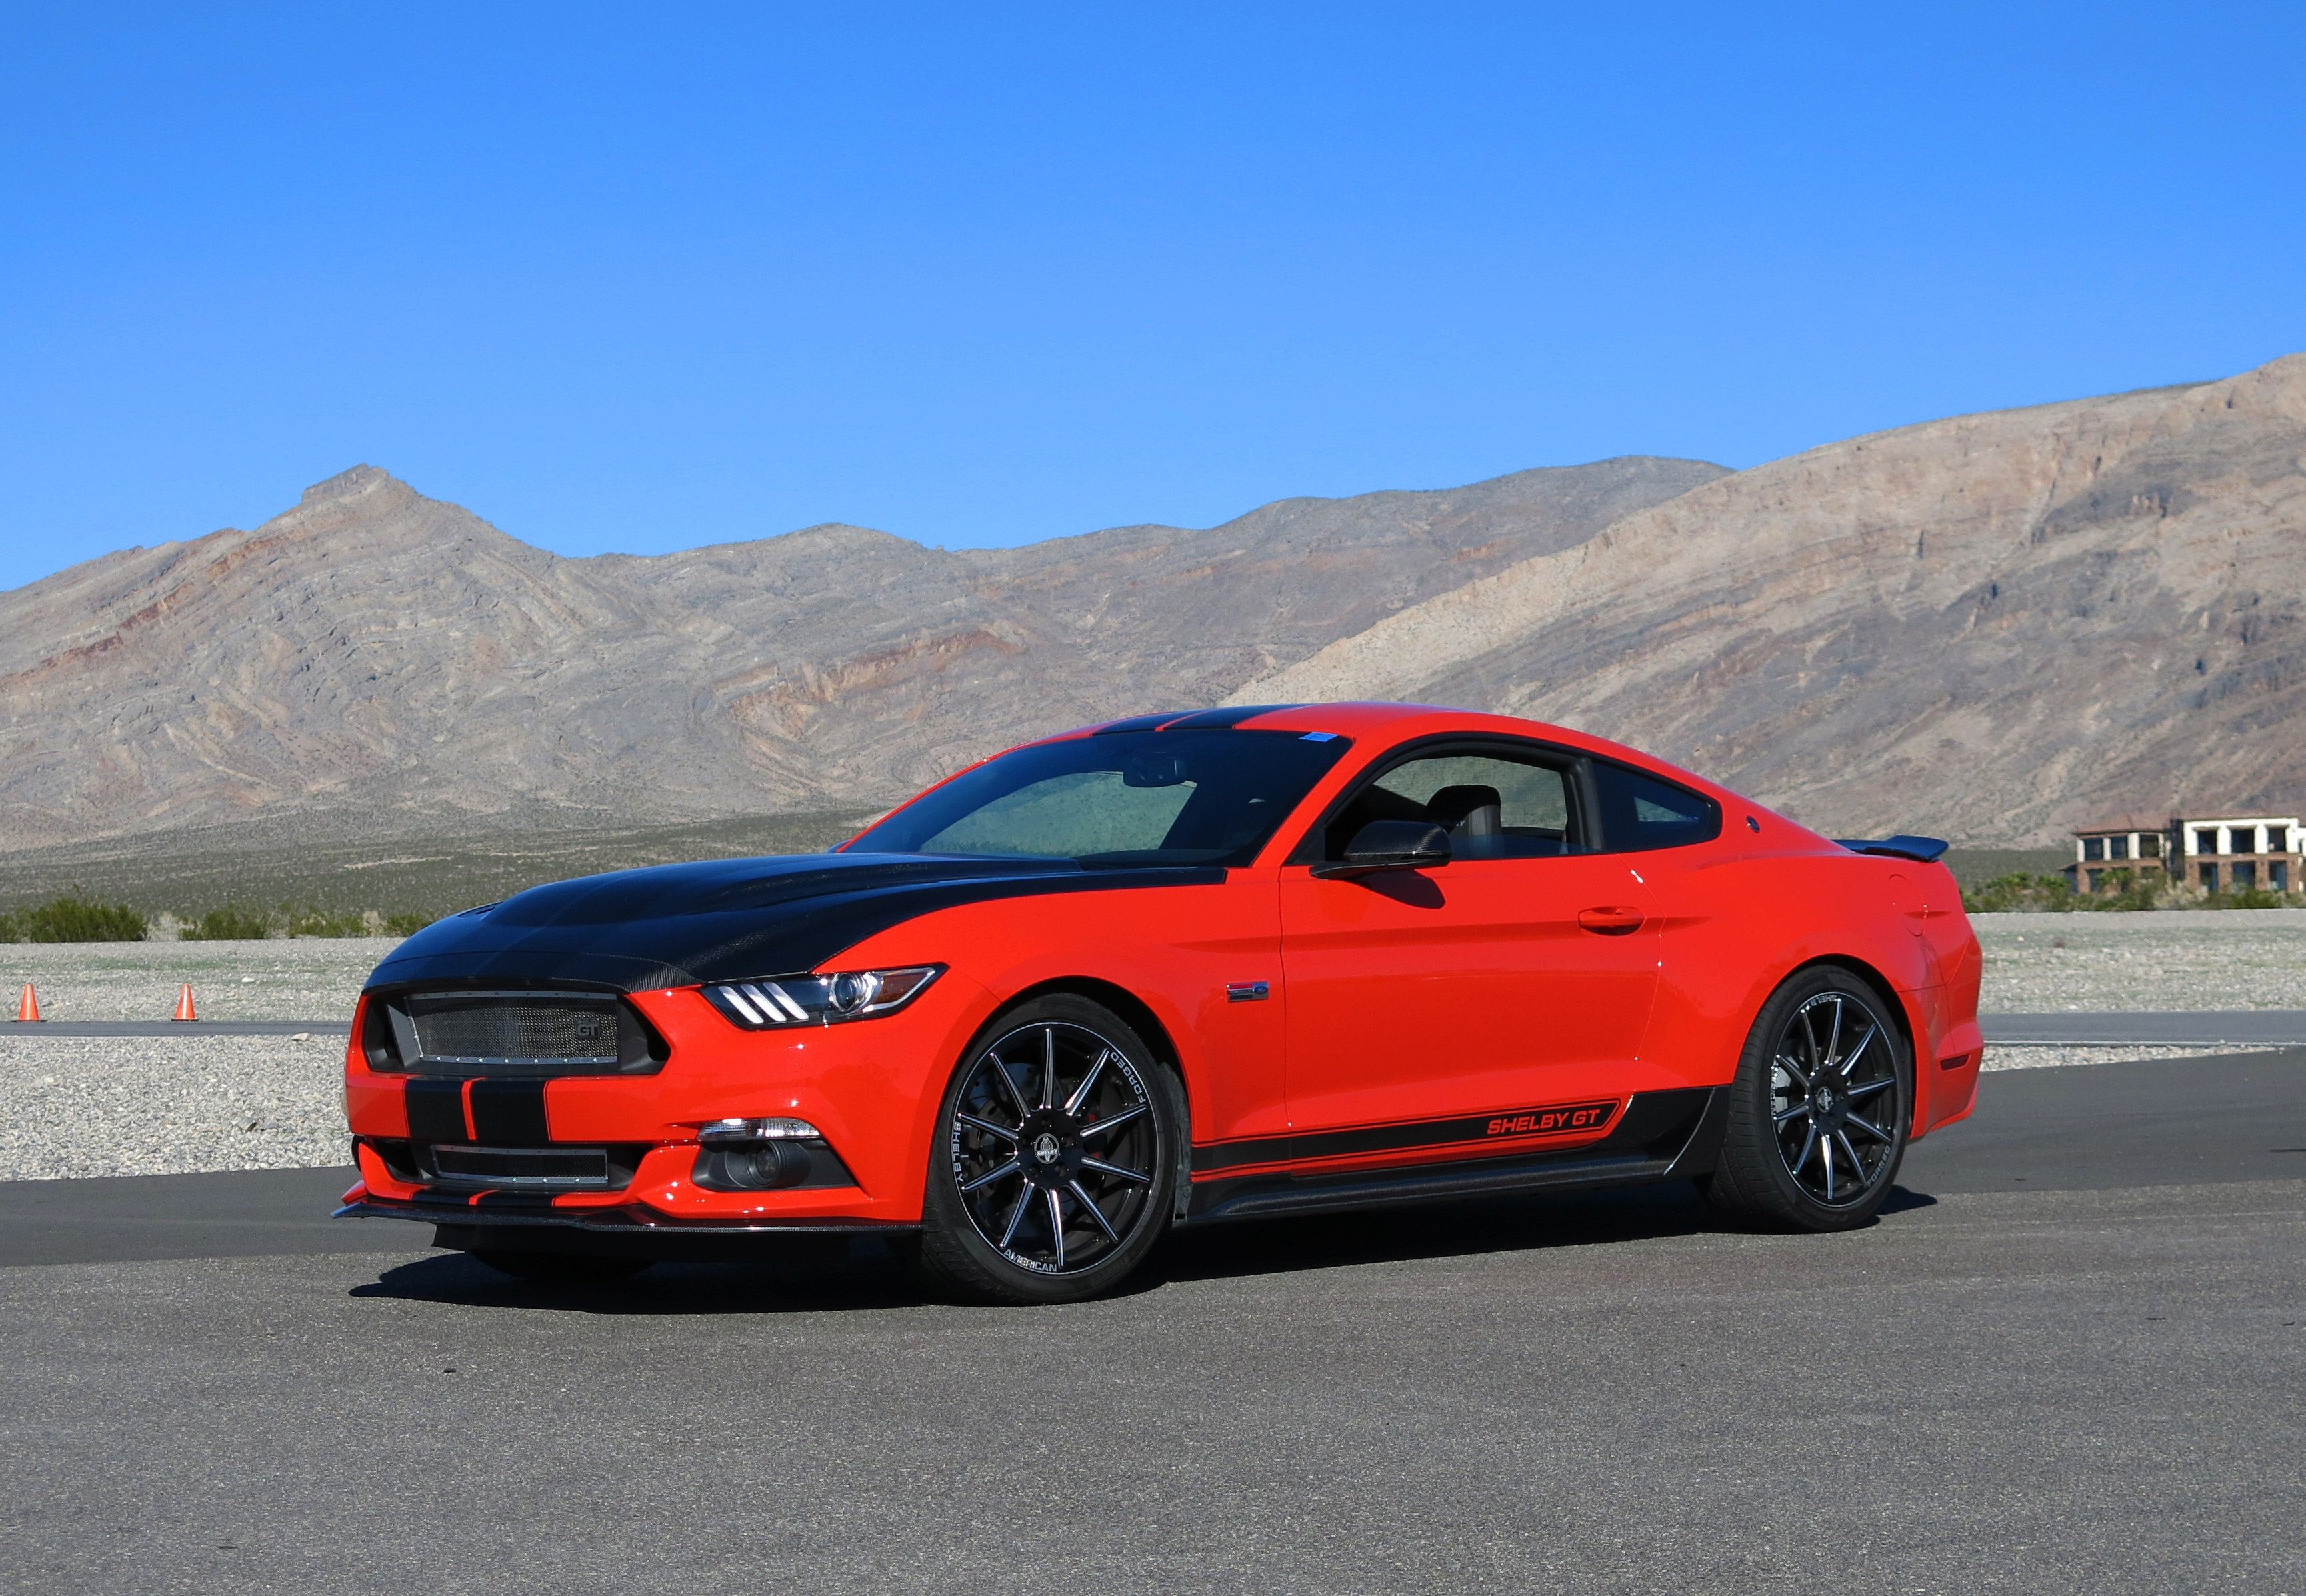 2017 Ford Mustang Pony photo - 3